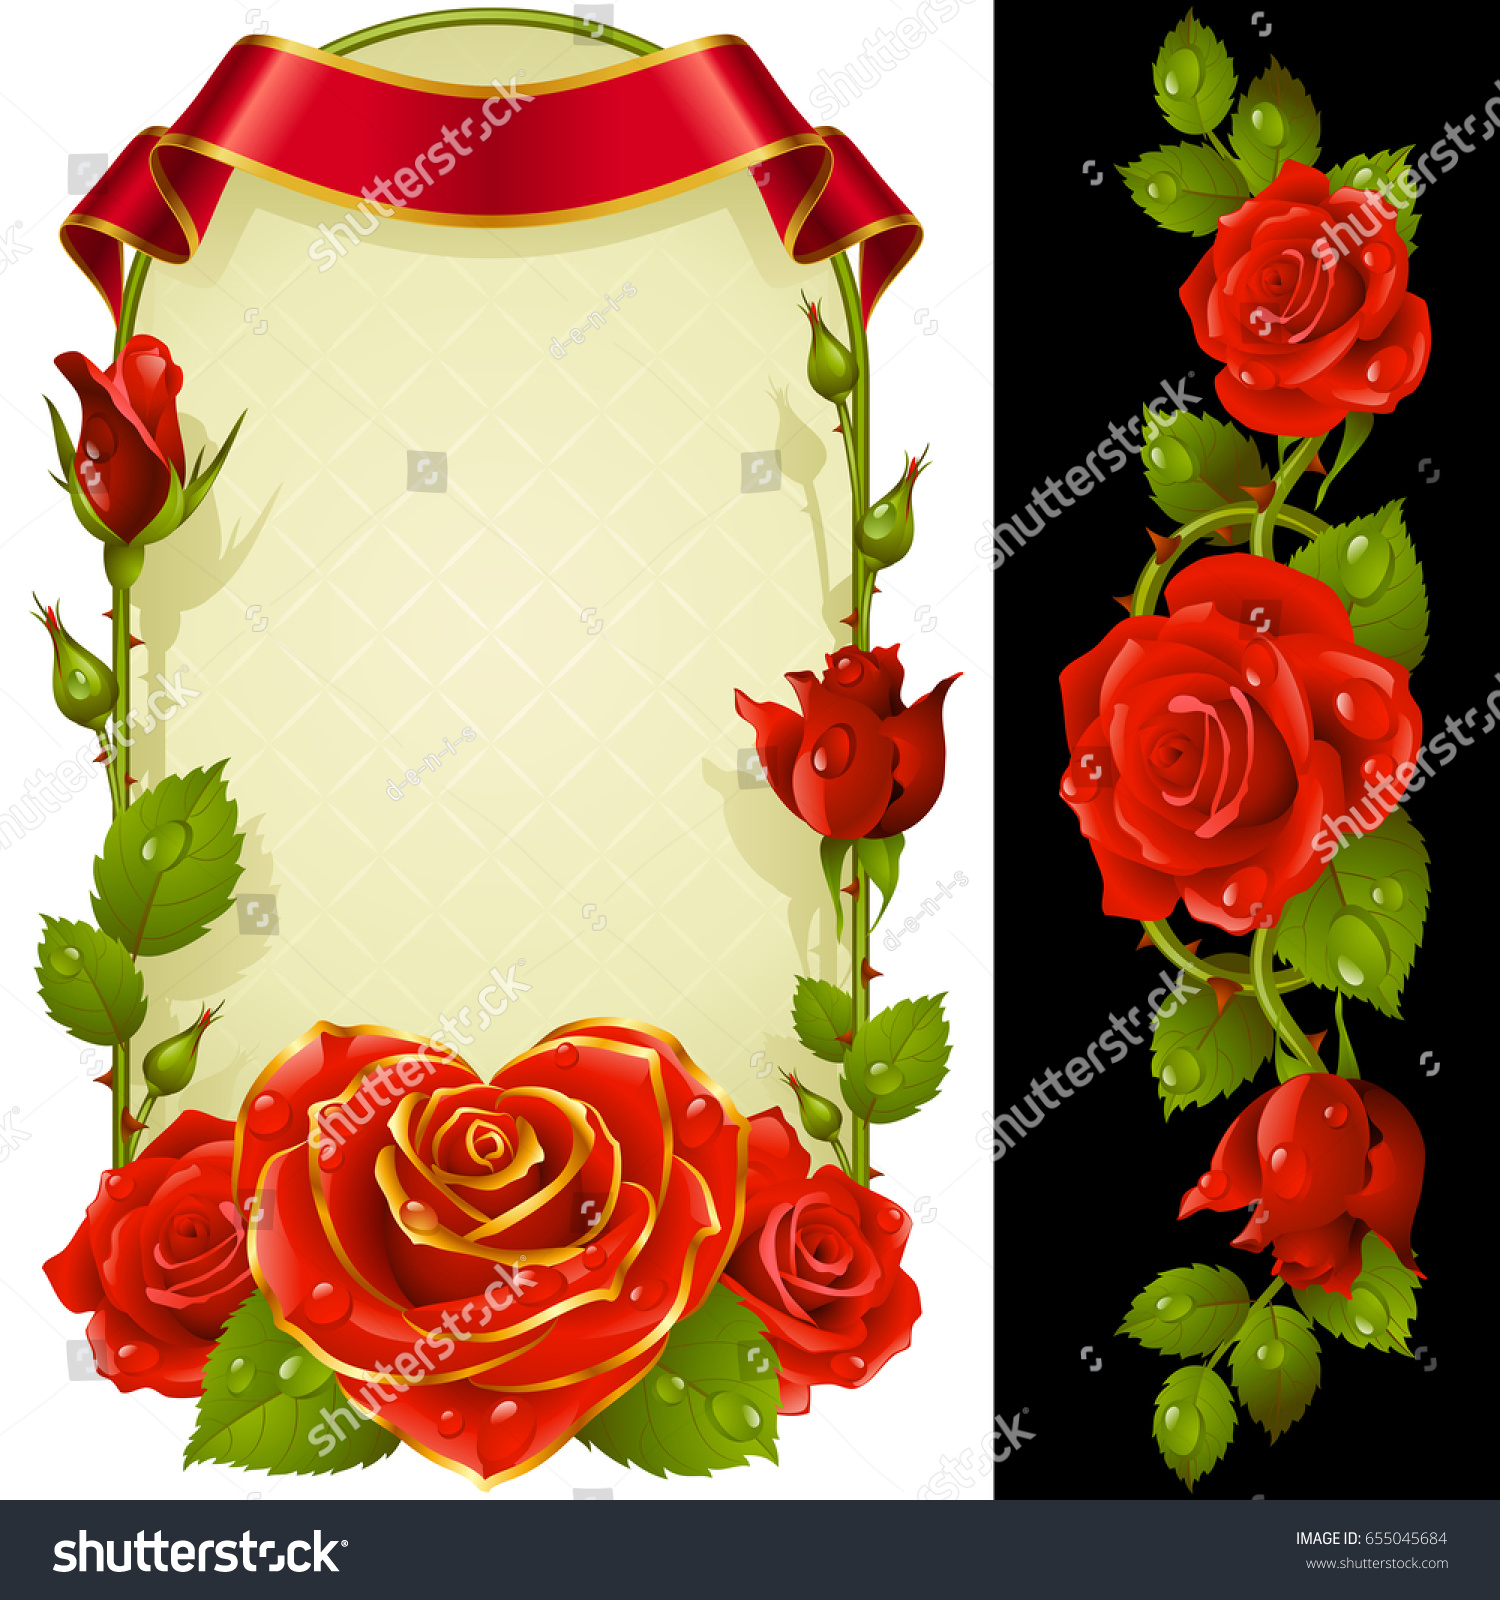 Vector Set Floral Decoration Red Roses Stock Vector (Royalty Free ...